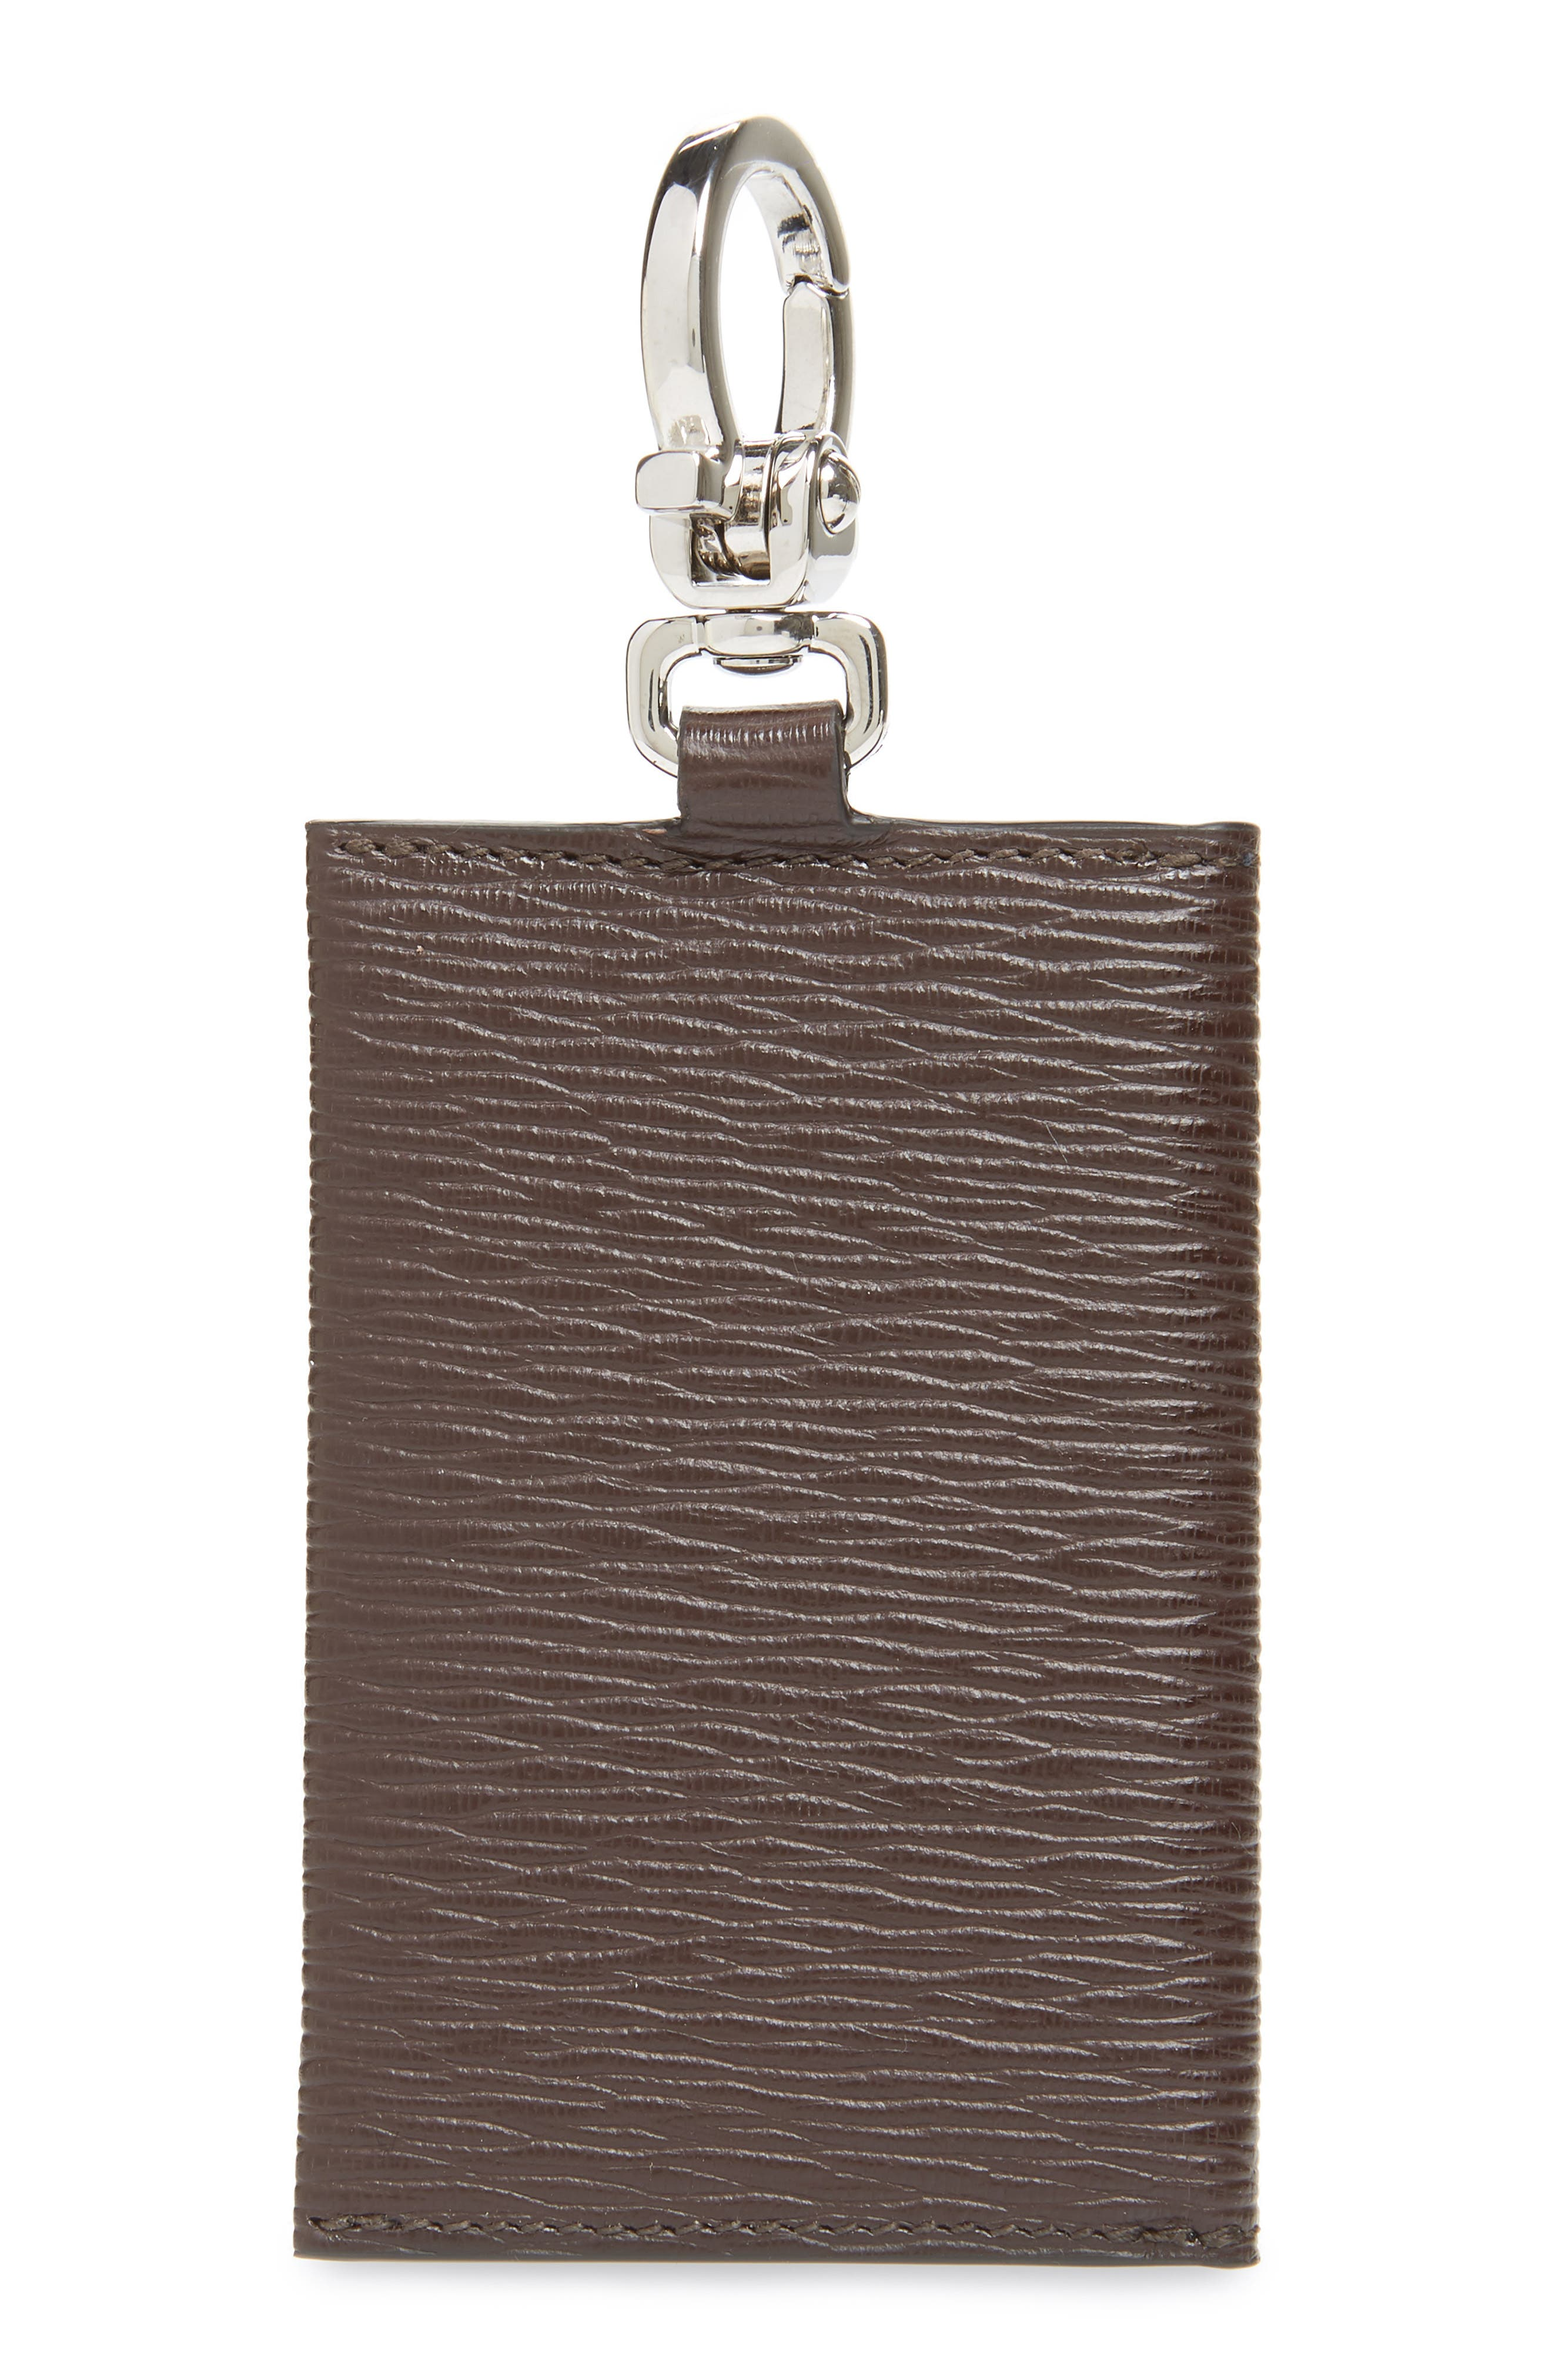 Revival Leather Key Ring Card Case,                             Alternate thumbnail 2, color,                             TOBACCO/ BLUE MARINE